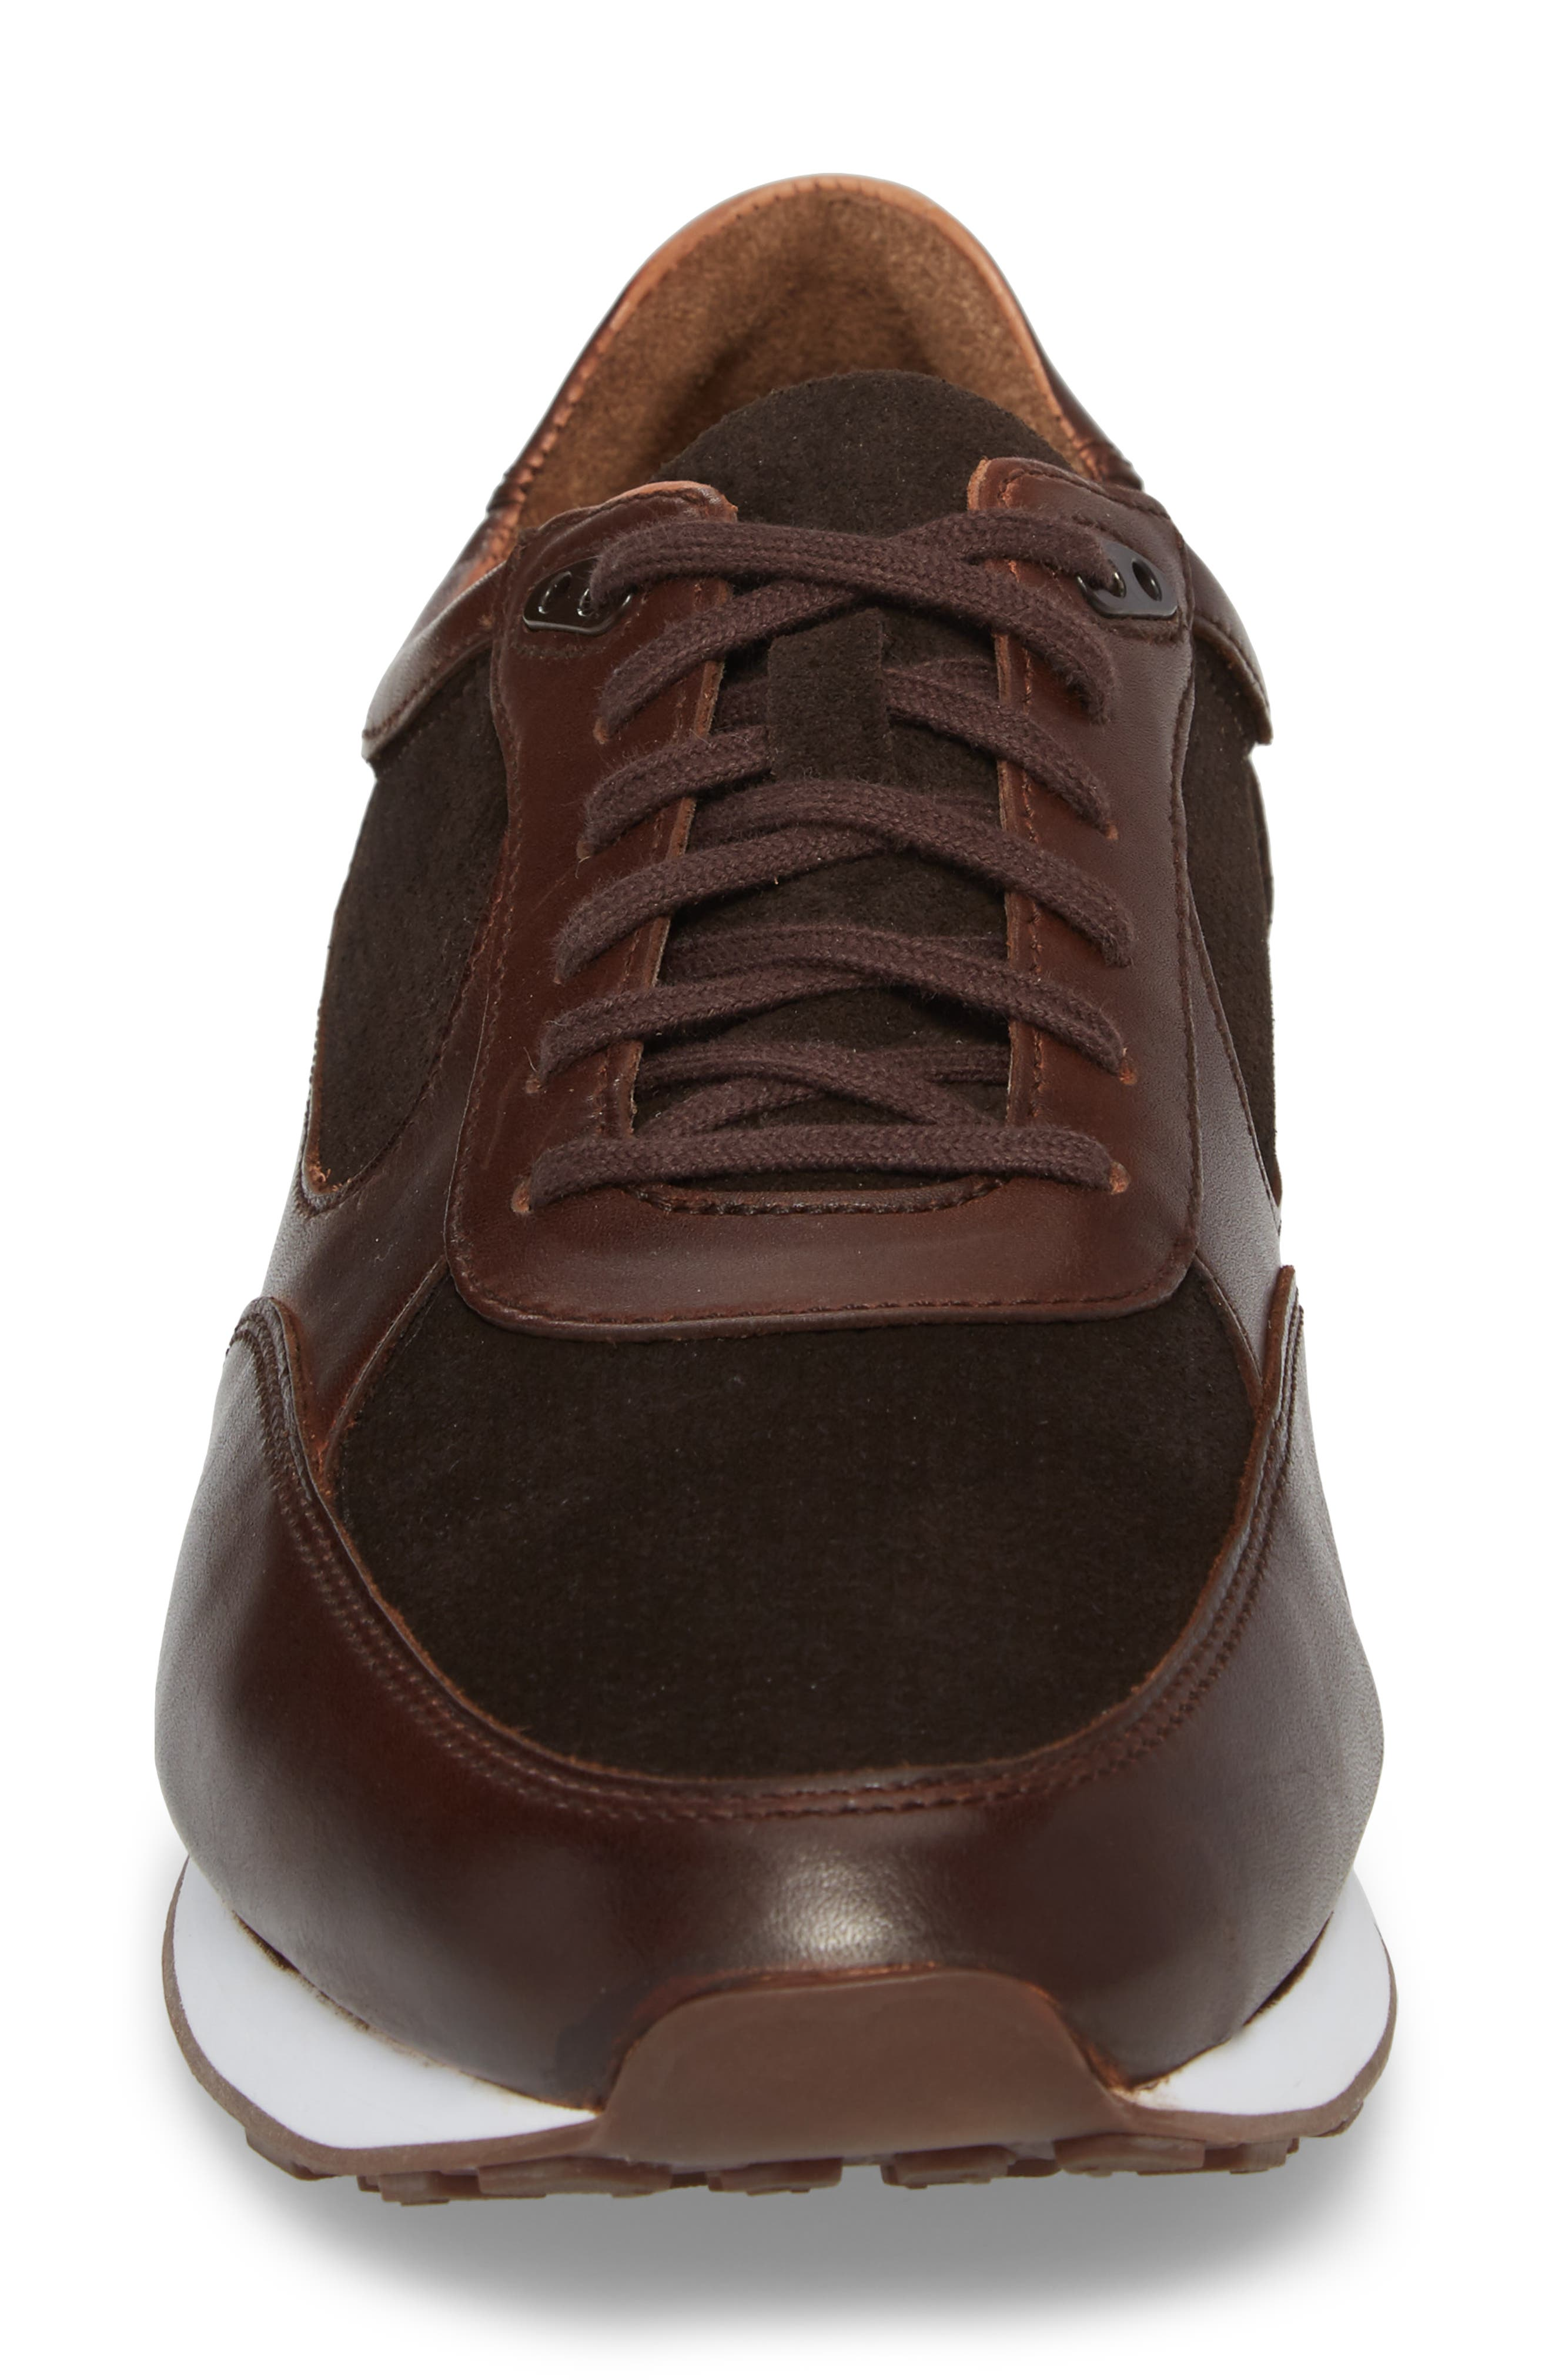 Malek Low Top Sneaker,                             Alternate thumbnail 4, color,                             Mahogany Leather/ Suede